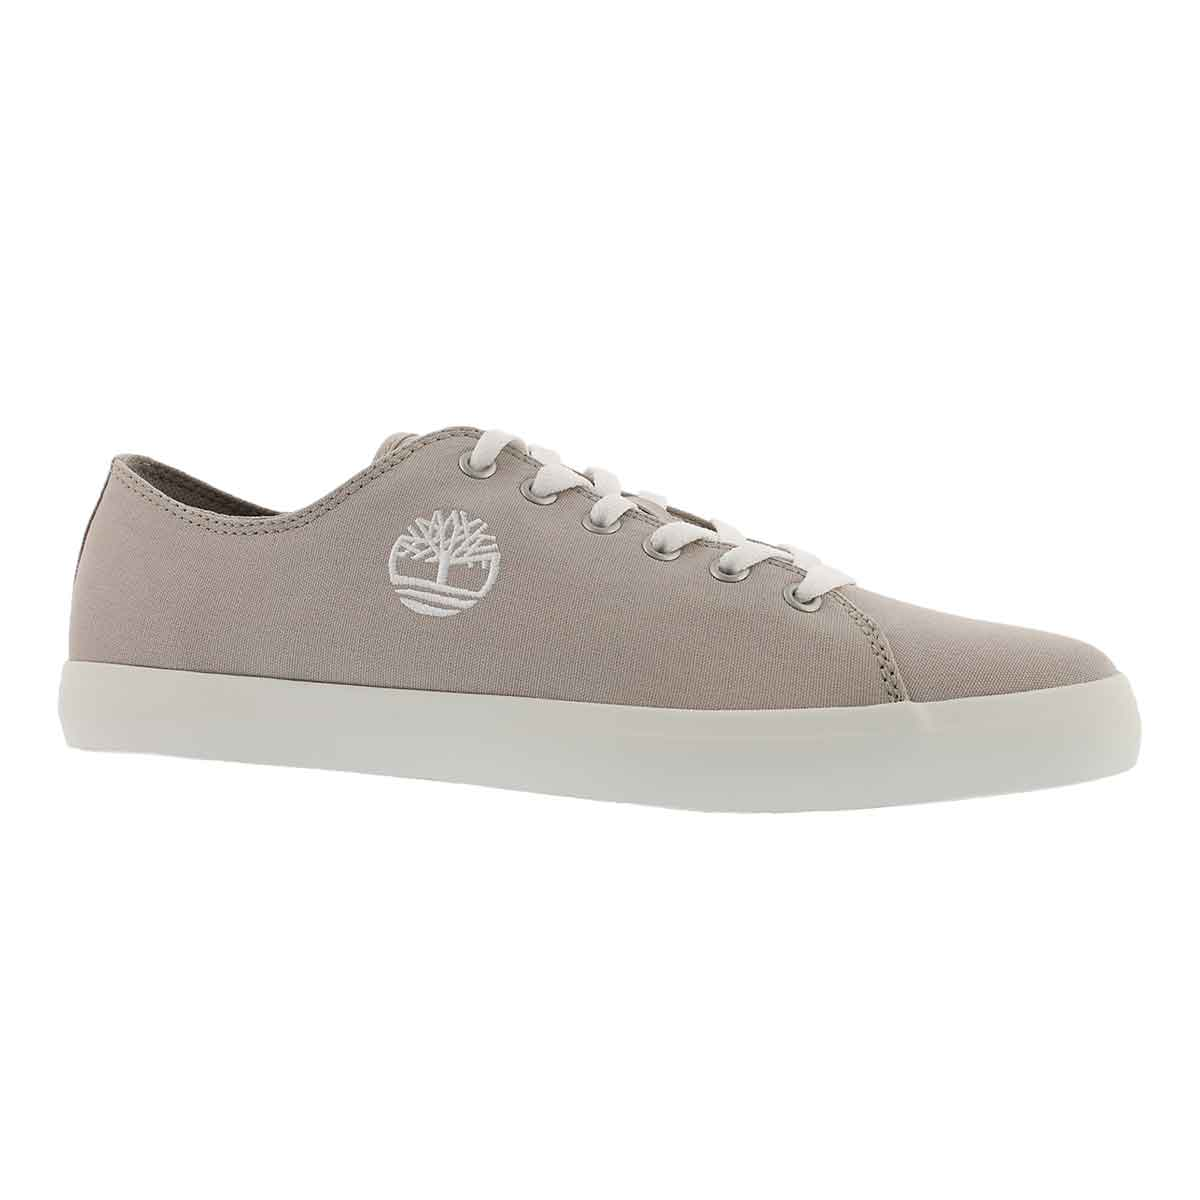 Men's UNION WHARF taupe sneakers